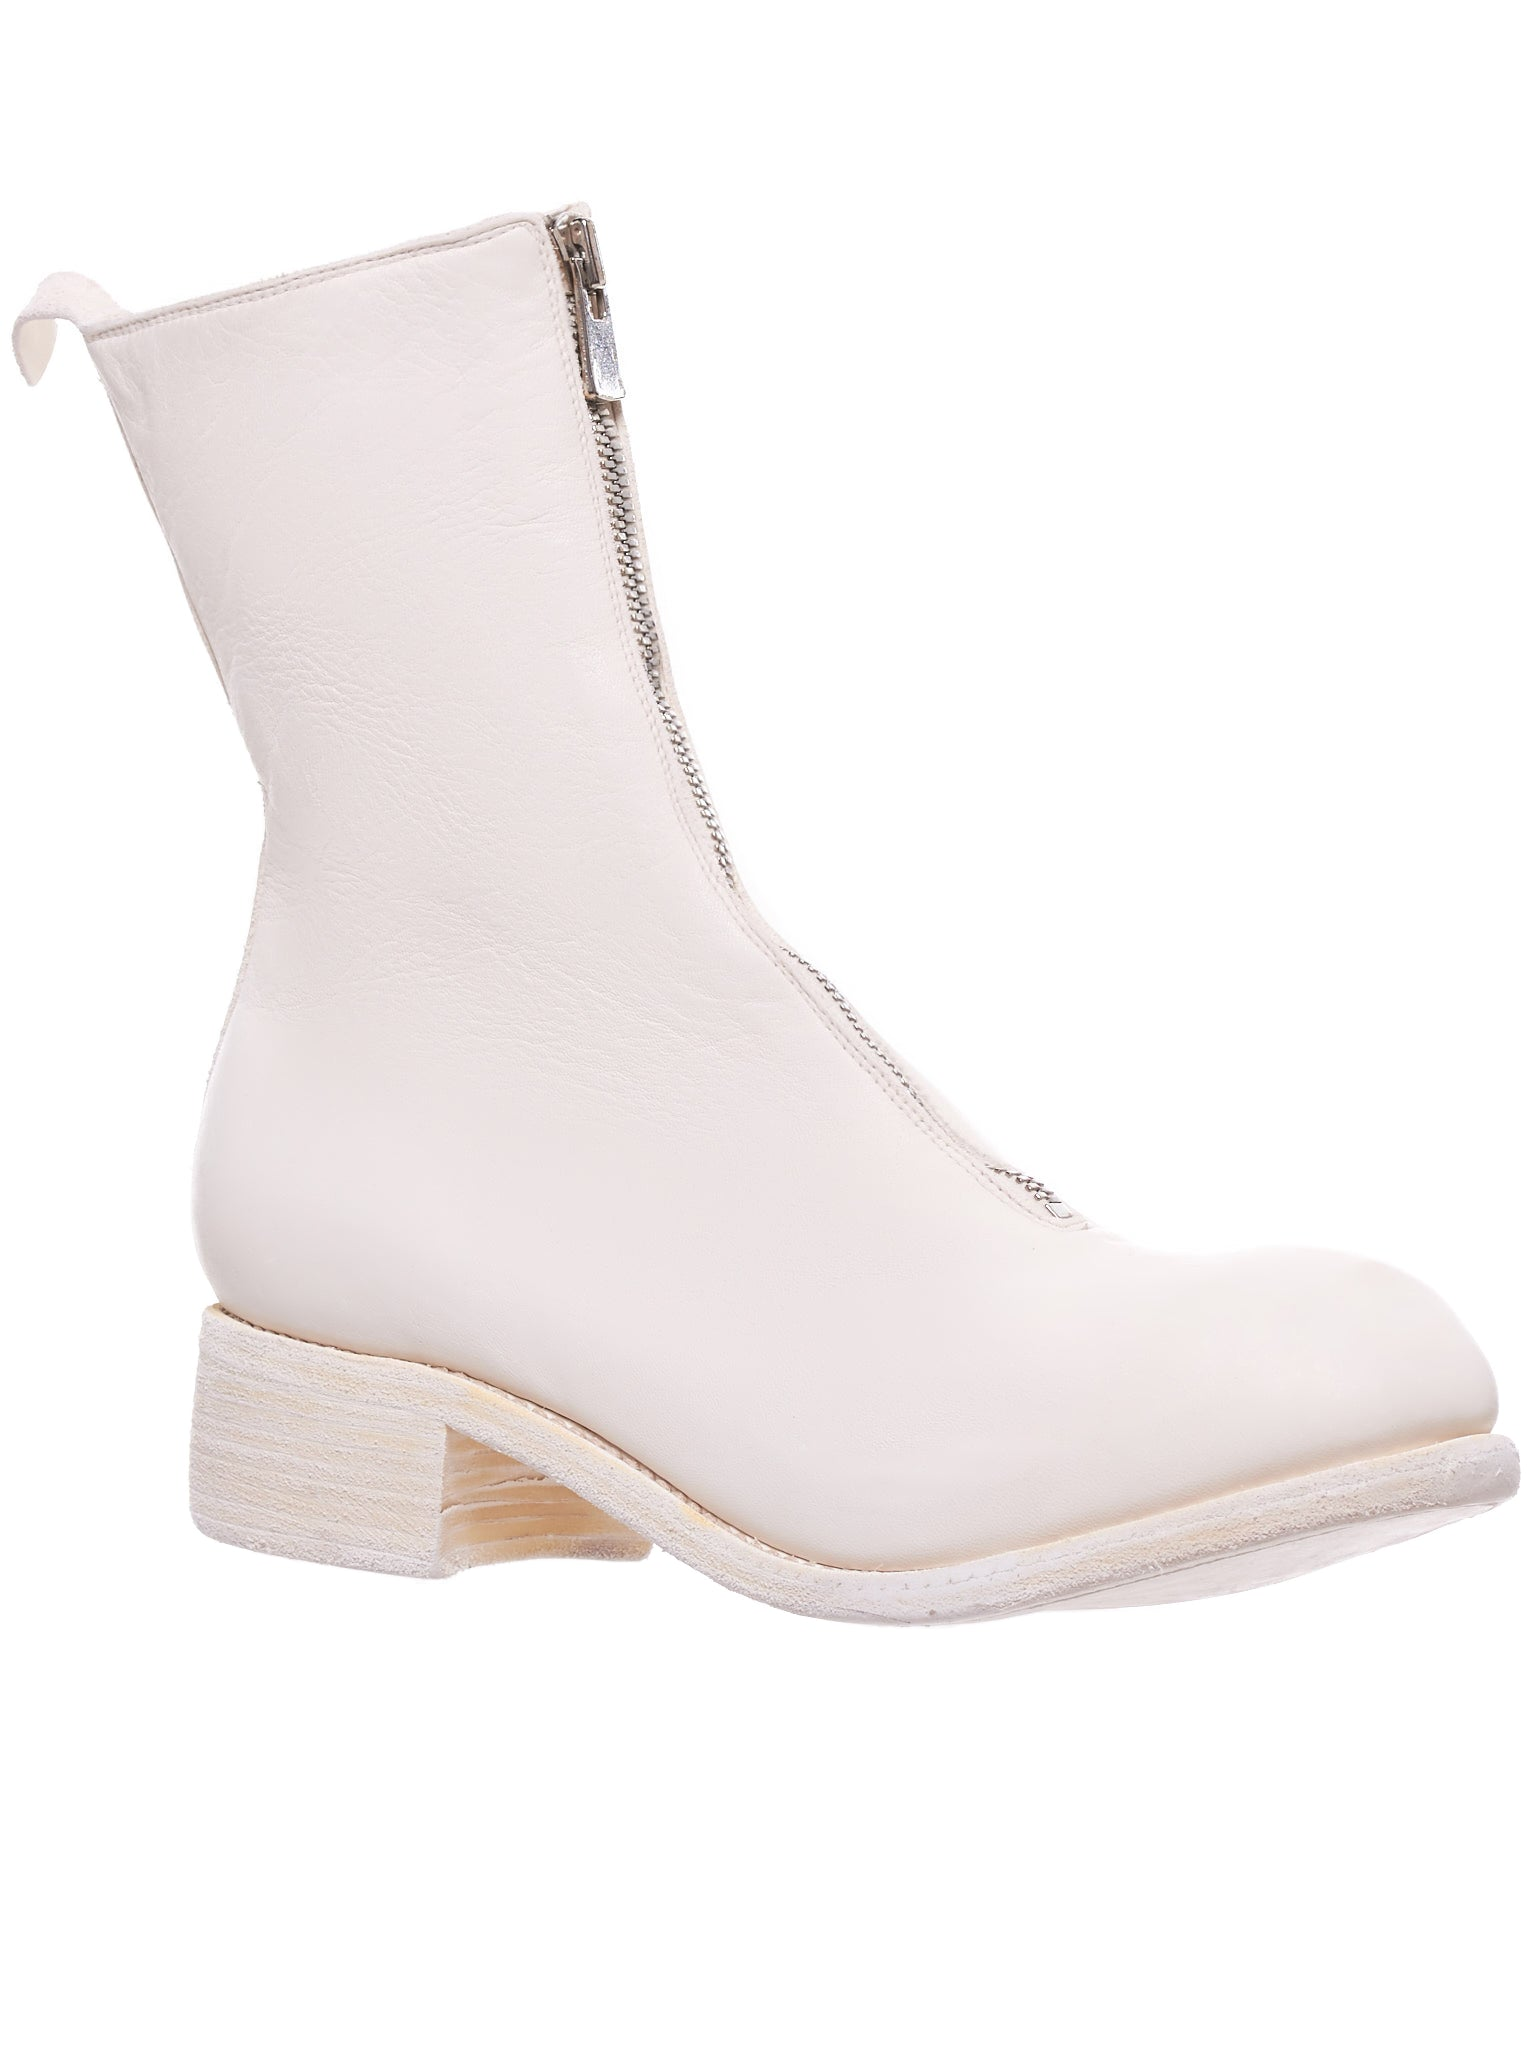 PL2 Horse Leather Boot (PL2-HORSE-FG-WHITE)